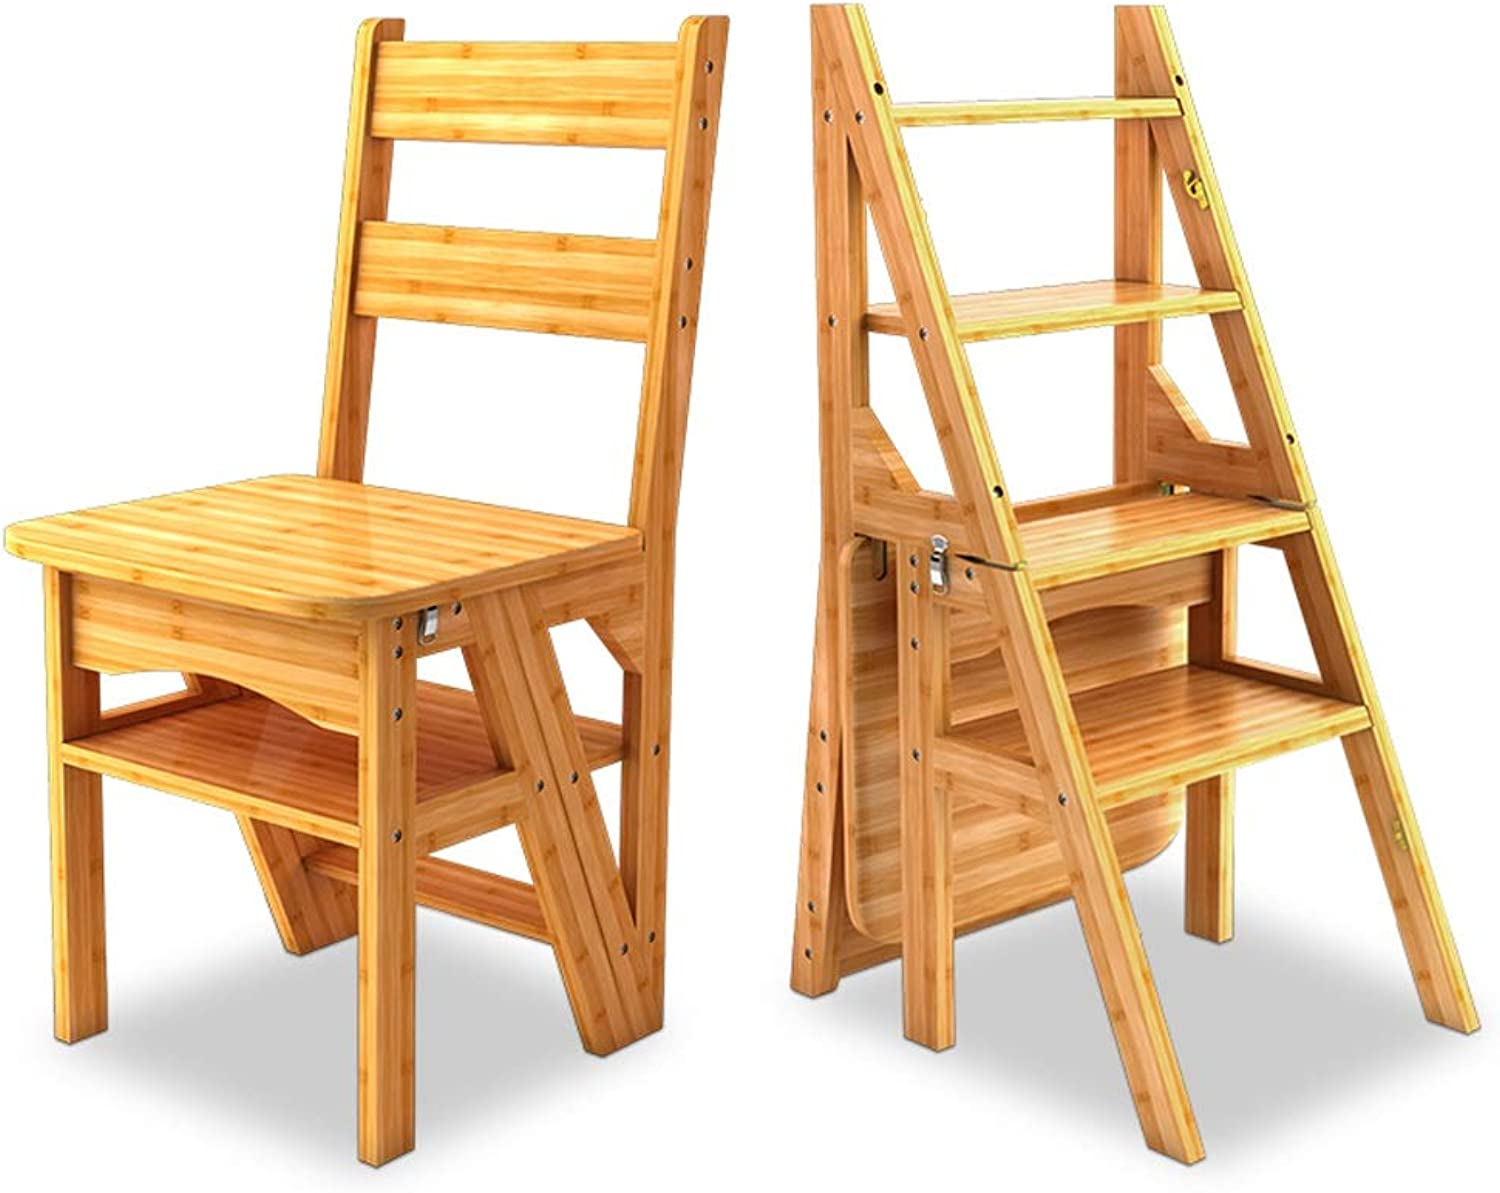 WCS American Solid Wood Dual-use Staircase Chair Herringbone Ladder Multi-function Step Stool Four-layer Climbing Ladder Home Folding Chair 40× 39 ×90cm (color   Bamboo color)